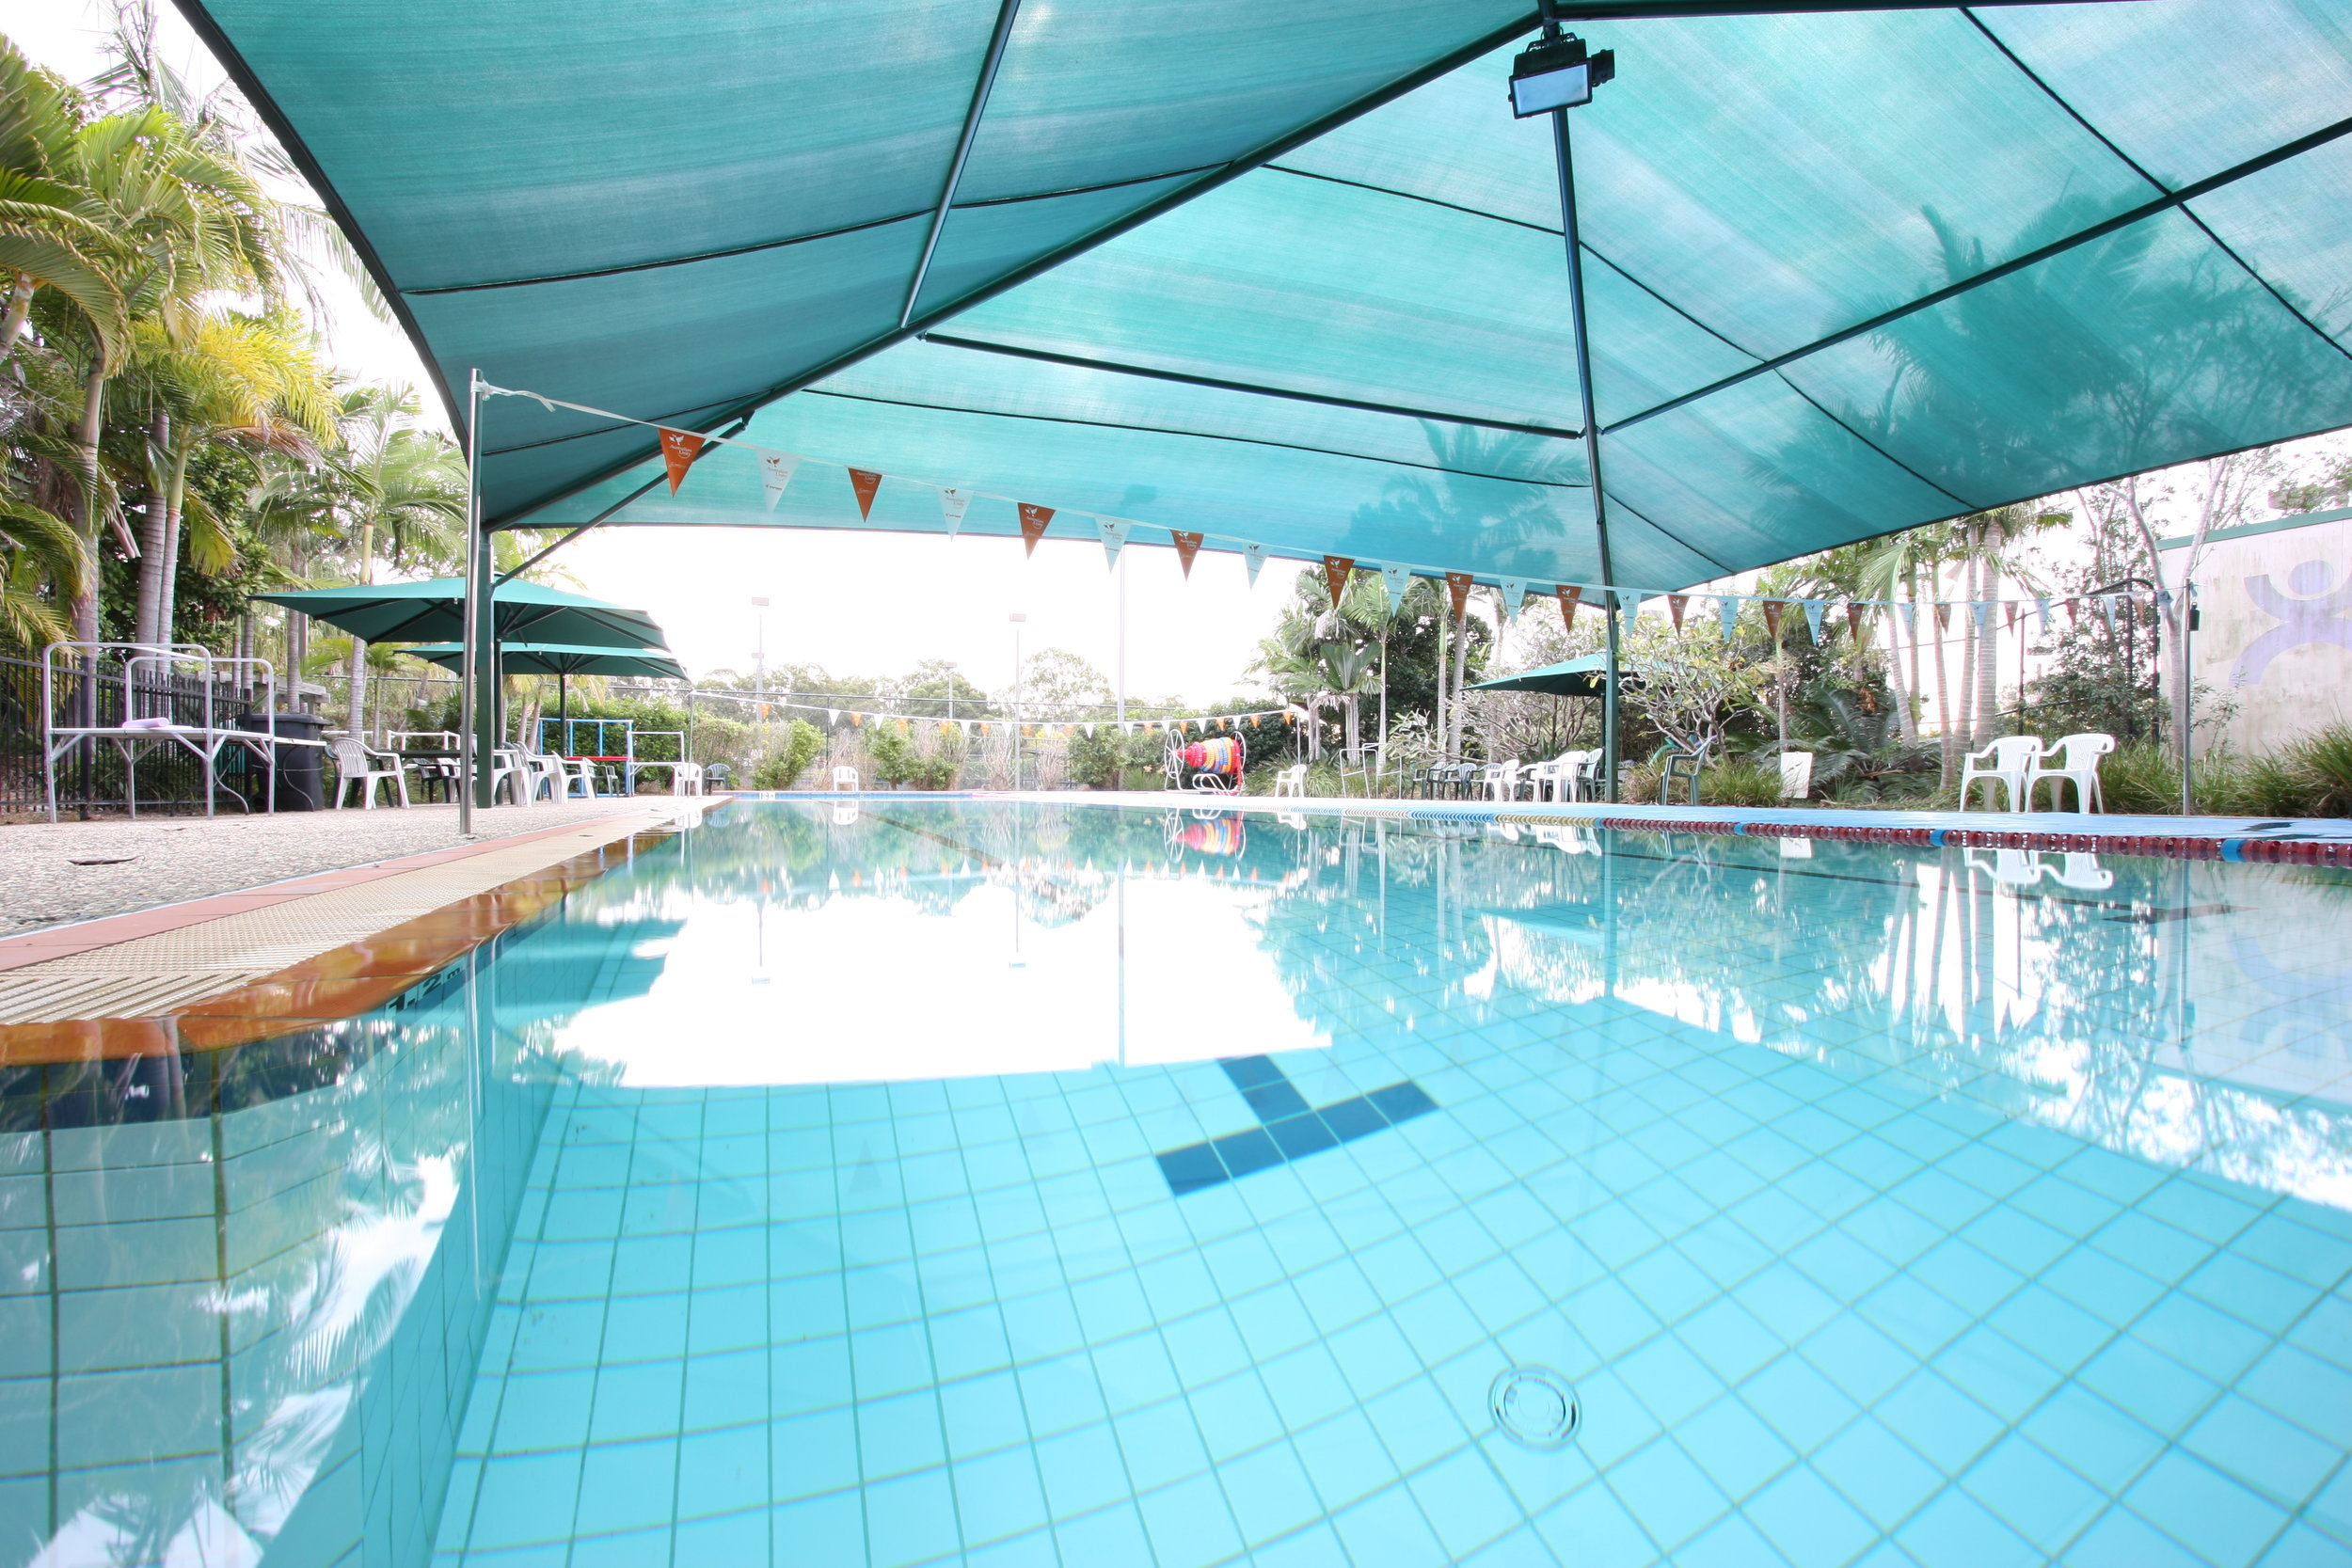 Swimming Pool - 25m Heated Pool with Aqua Aerobics - Classes available as part of your membership